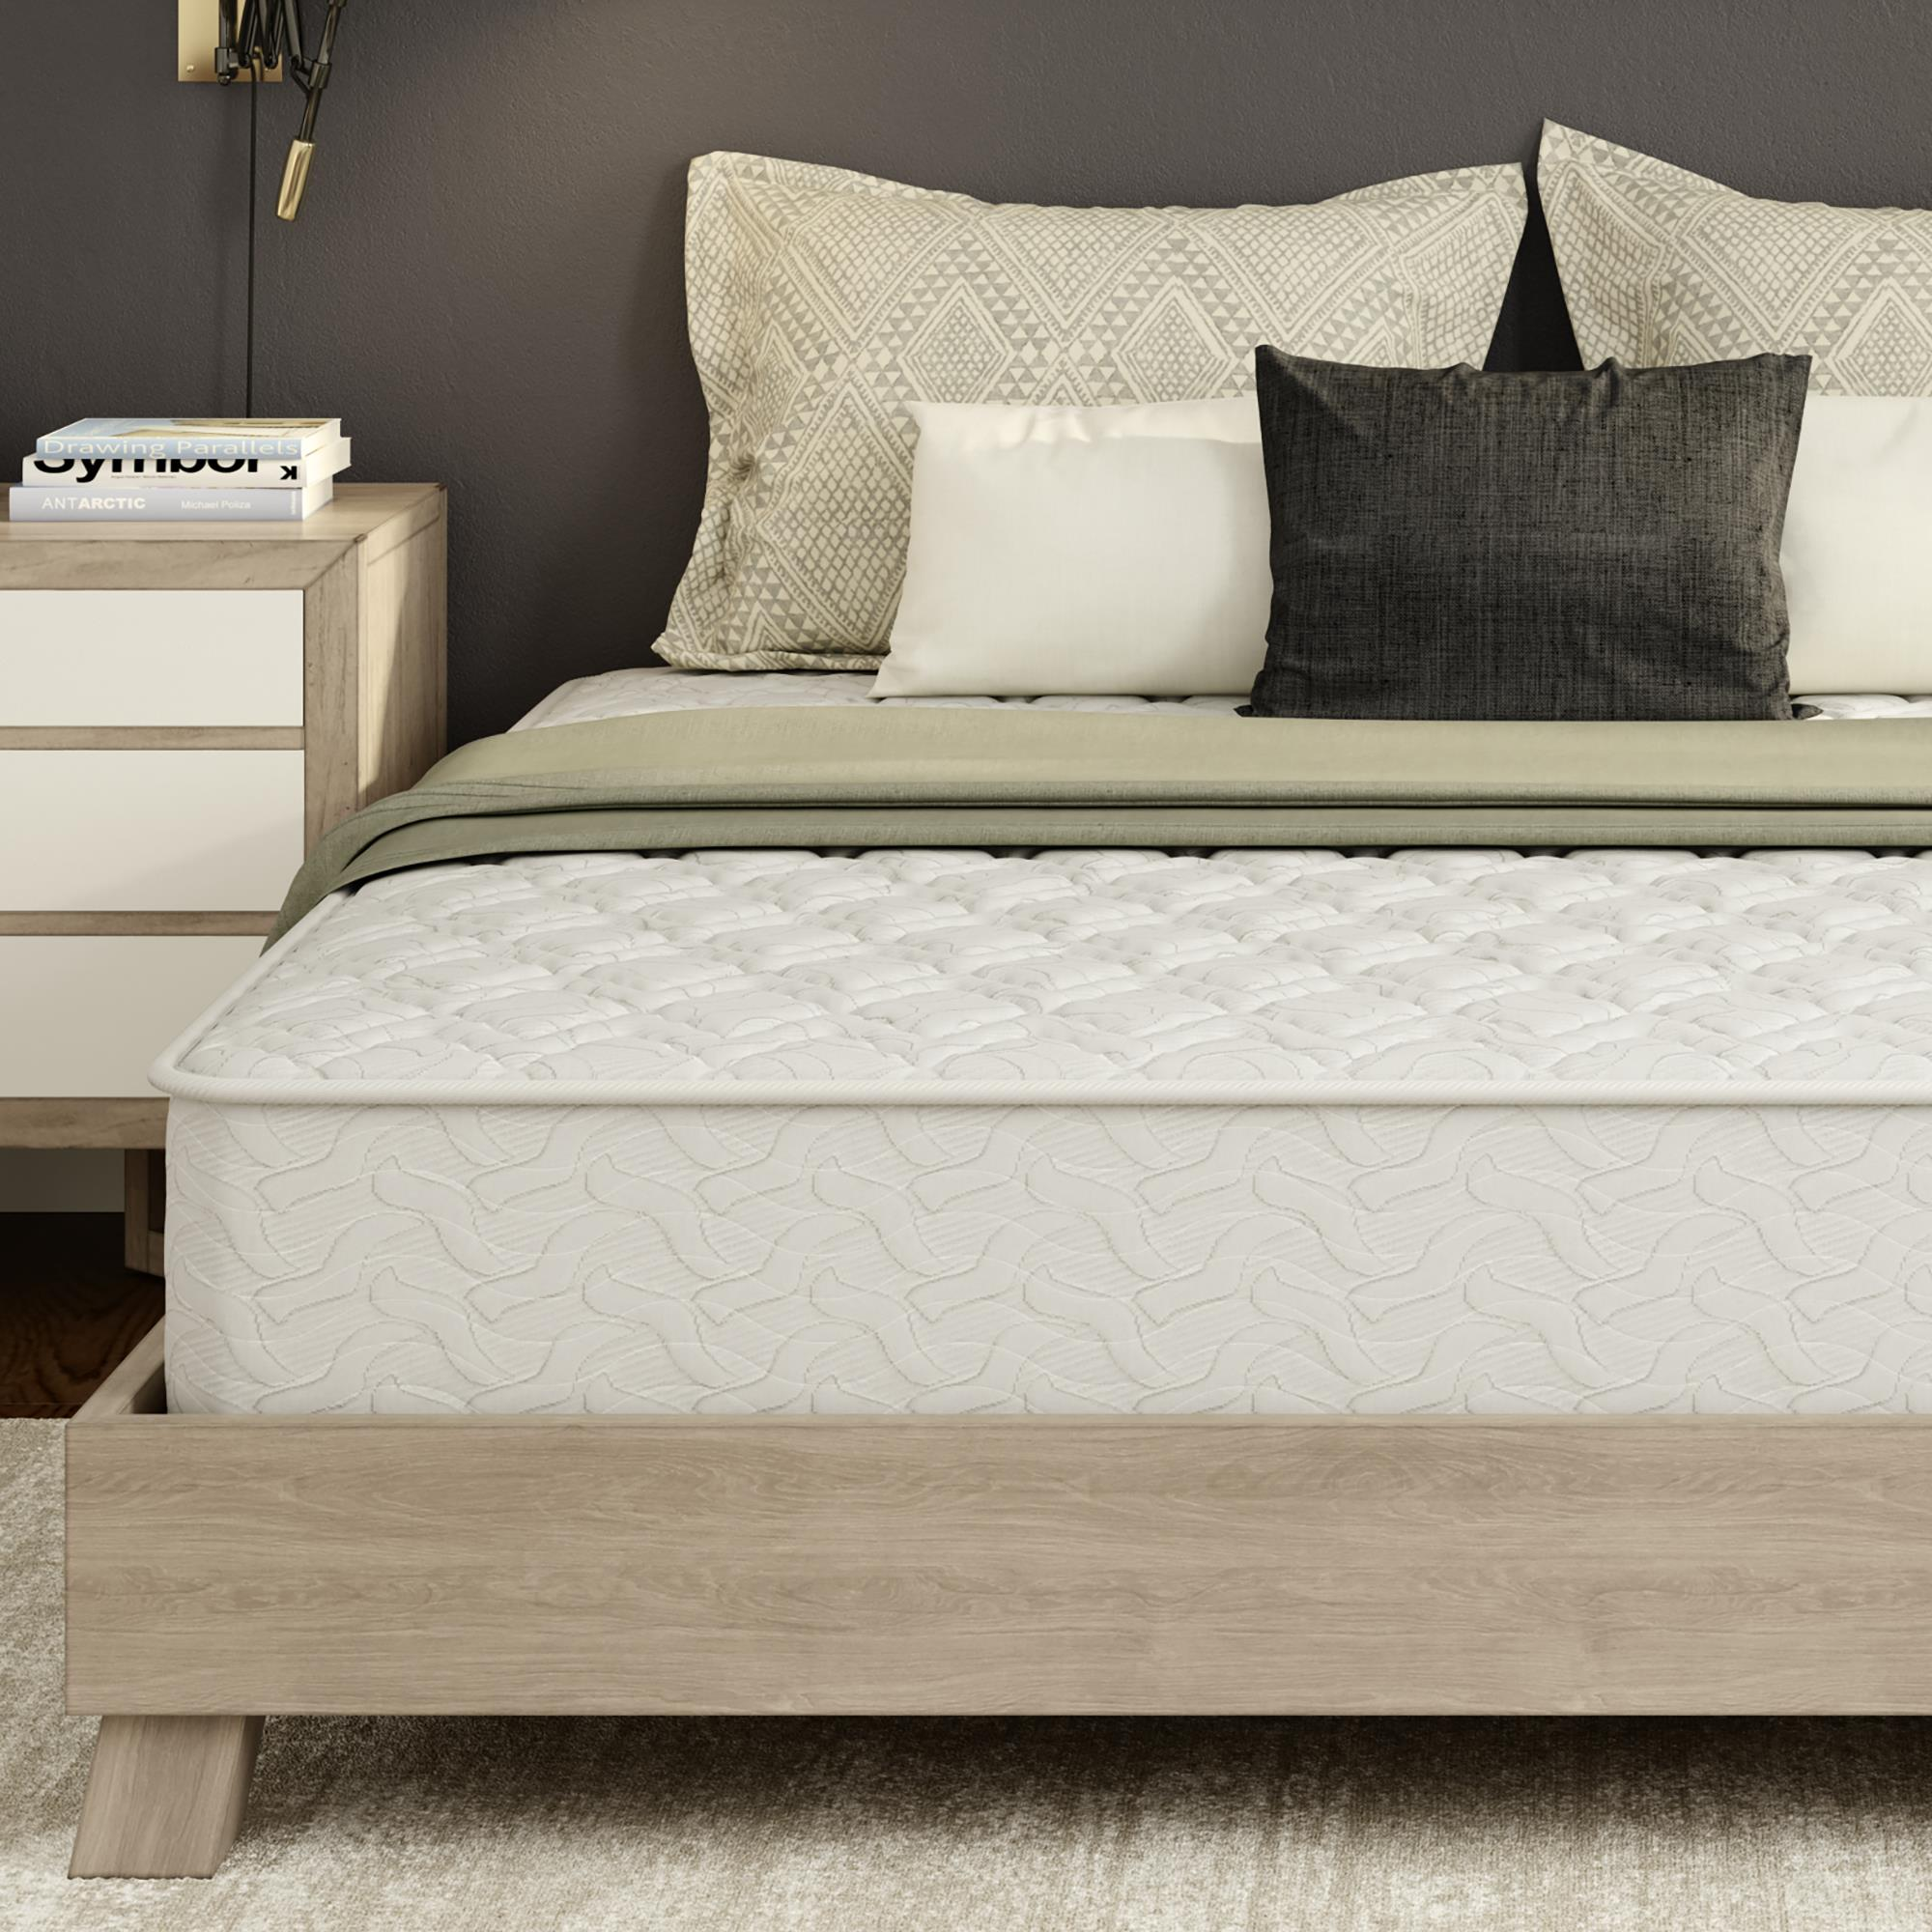 """Signature Sleep Gold CertiPUR-US Triumph 12"""" Independently Encased Coil Mattress, Multiple Sizes"""